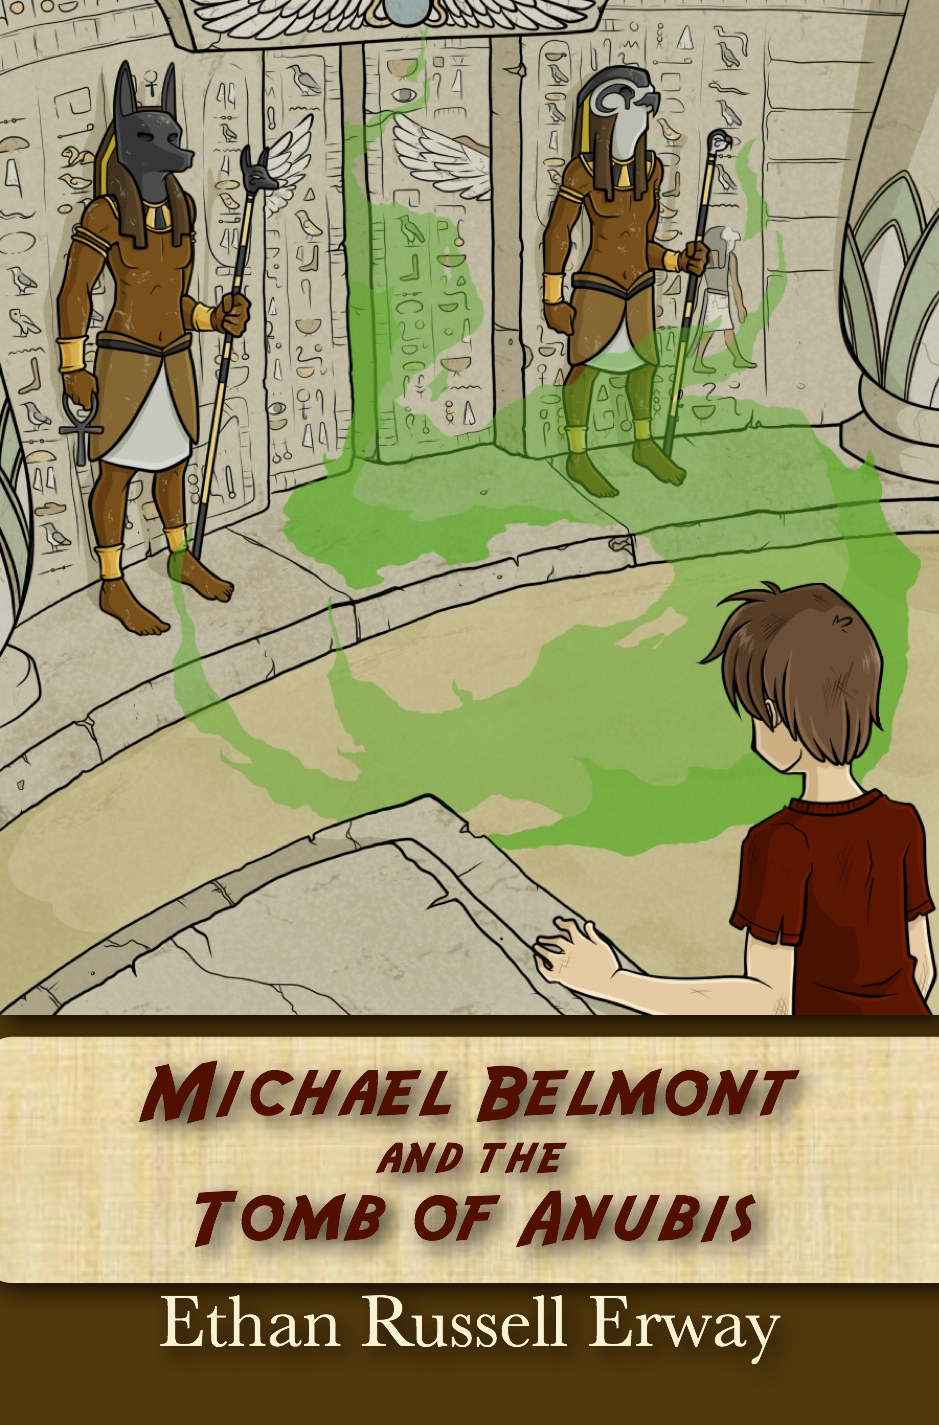 Michael Belmont and the Tomb of Anubis